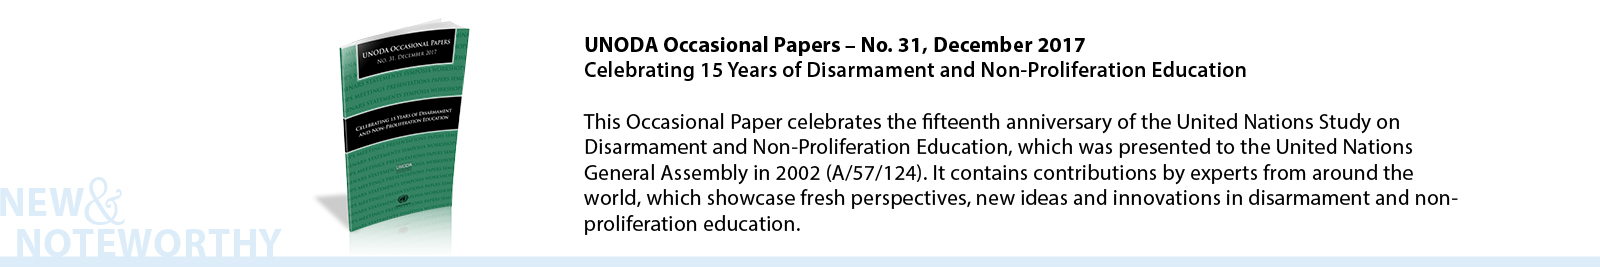 UNODA Occasional Papers – No. 31, December 2017 - Celebrating 15 Years of Disarmament and Non-Proliferation Education - This Occasional Paper celebrates the fifteenth anniversary of the United Nations Study on Disarmament and Non-Proliferation Education, which was presented to the United Nations General Assembly in 2002 (A/57/124). It contains contributions by experts from around the world, which showcase fresh perspectives, new ideas and innovations in disarmament and non-proliferation education.